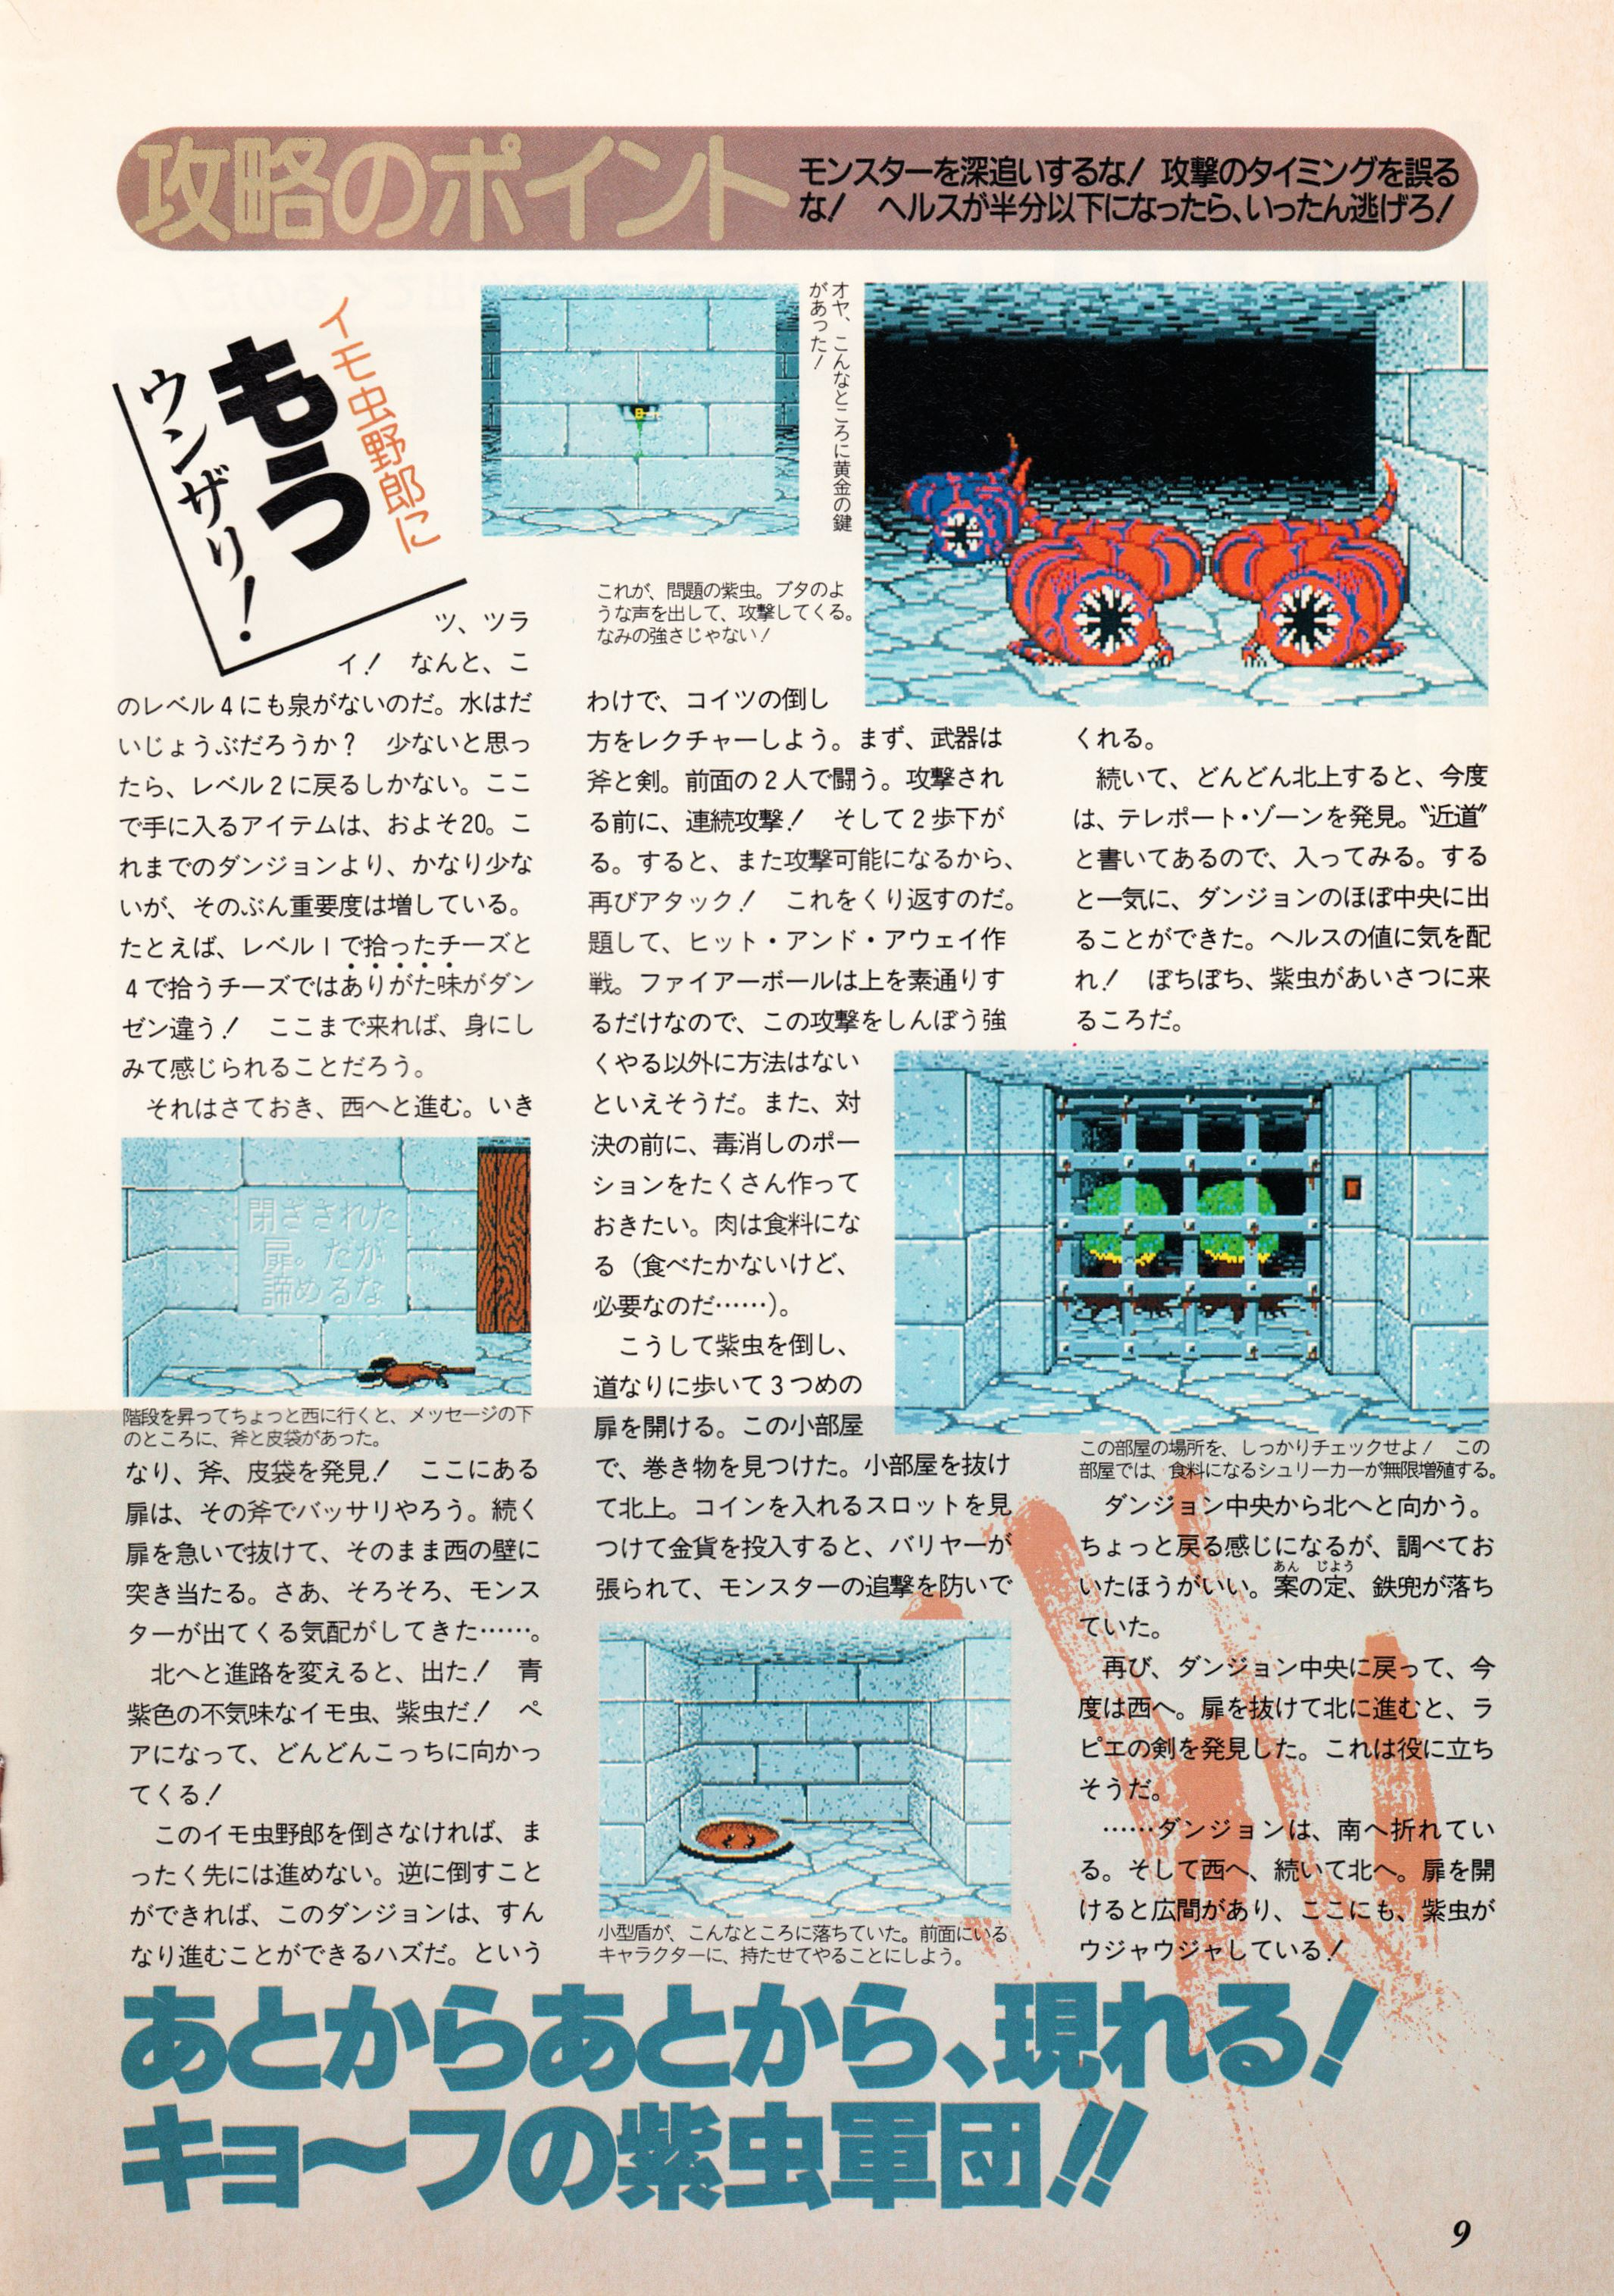 Supplement - Dungeon Master Companion Manual Guide published in Japanese magazine 'Popcom', Vol 4 No 1 01 April 1990, Page 11